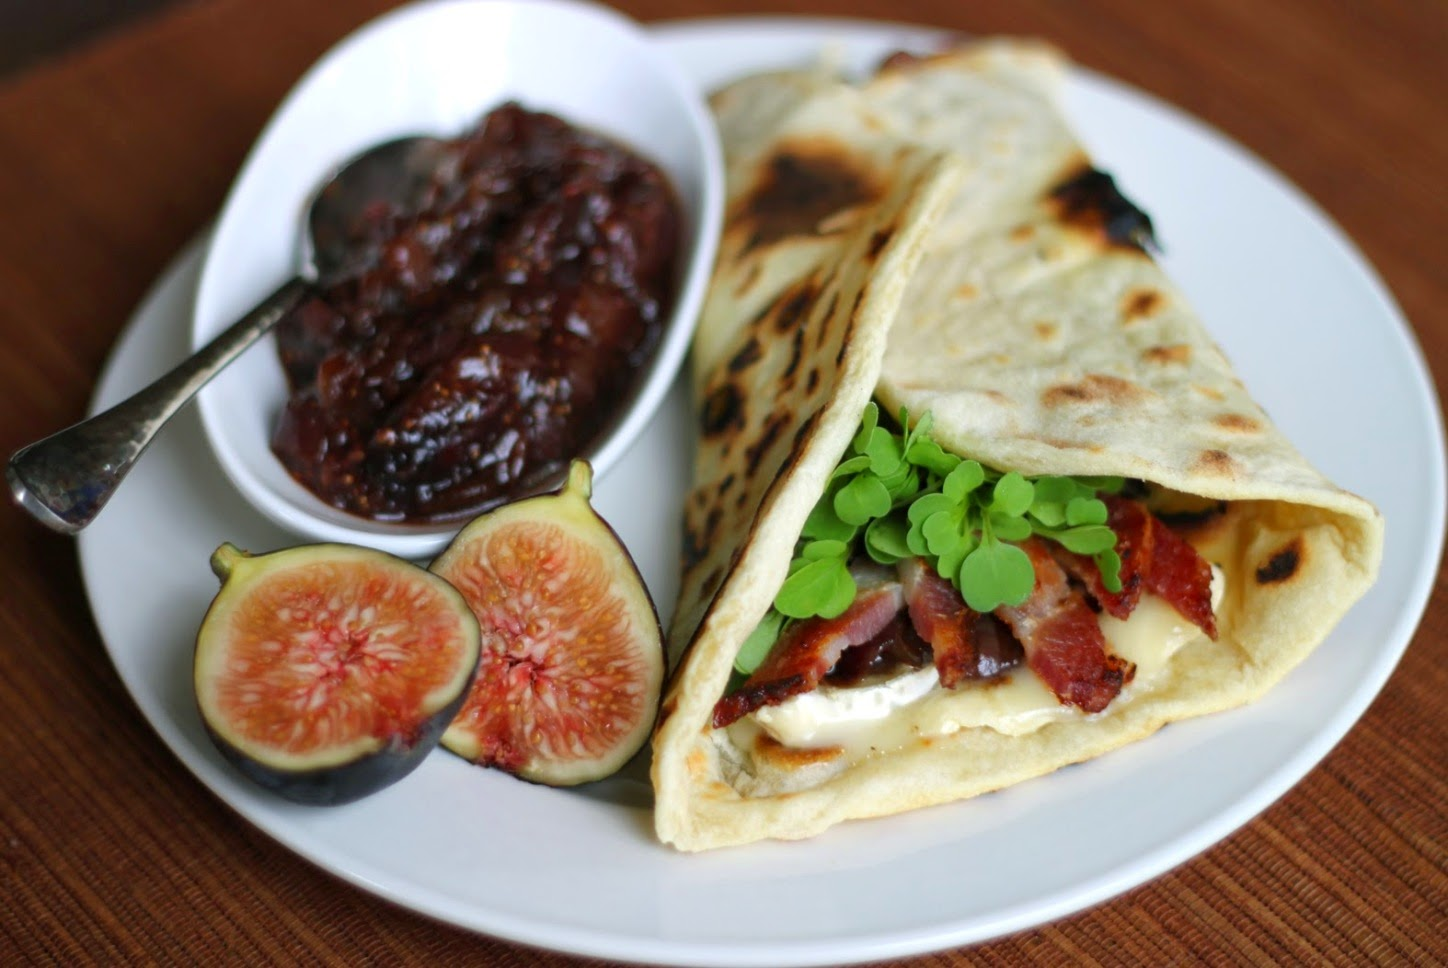 ... piadina lacks a doubt the most popular food from Romagna. Piadinas are